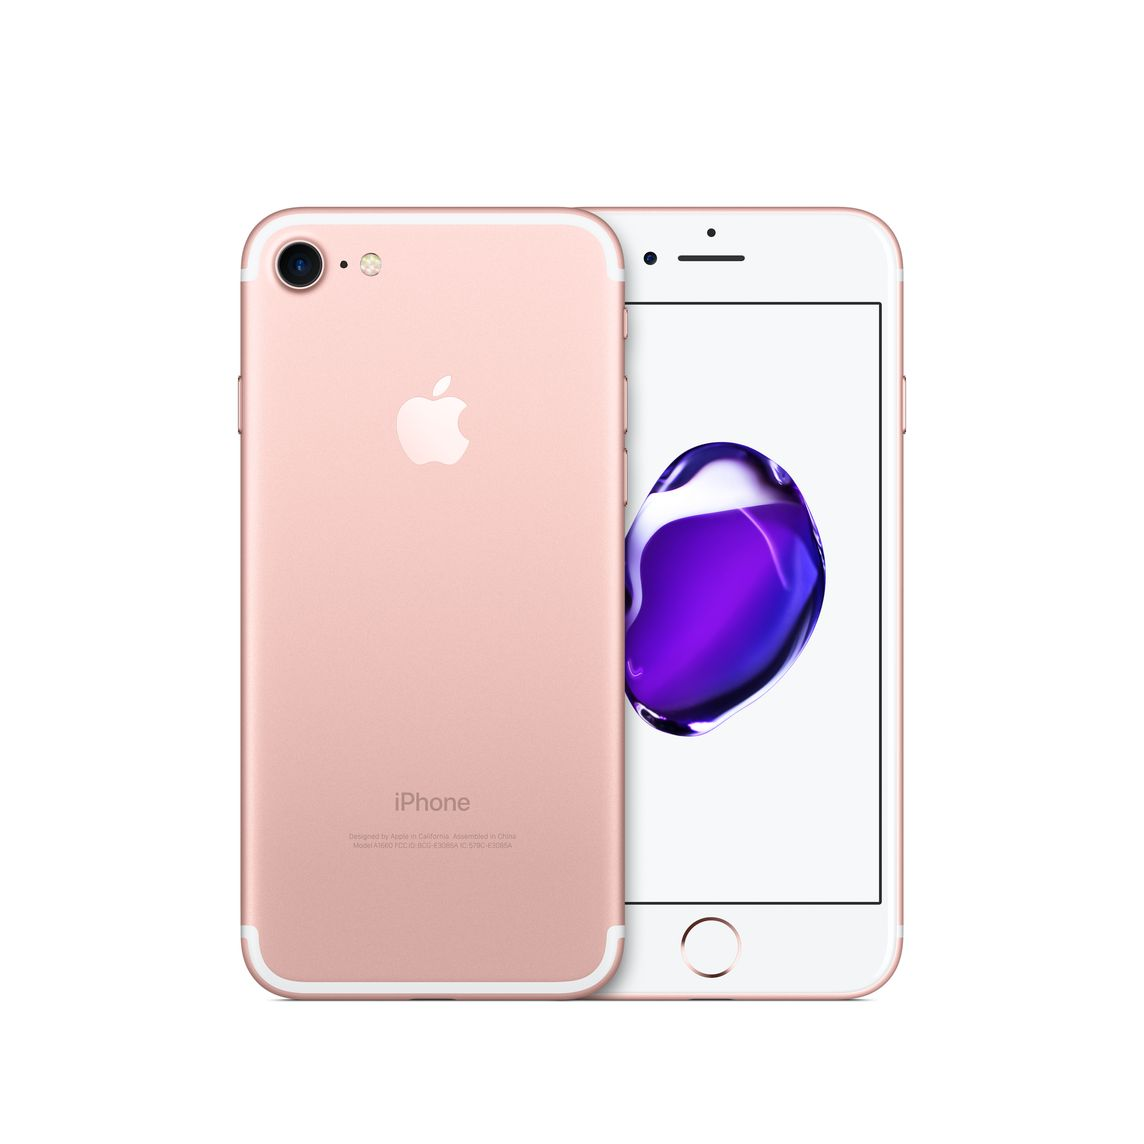 Refurbished iPhone 7 32GB - Rose Gold (Unlocked)